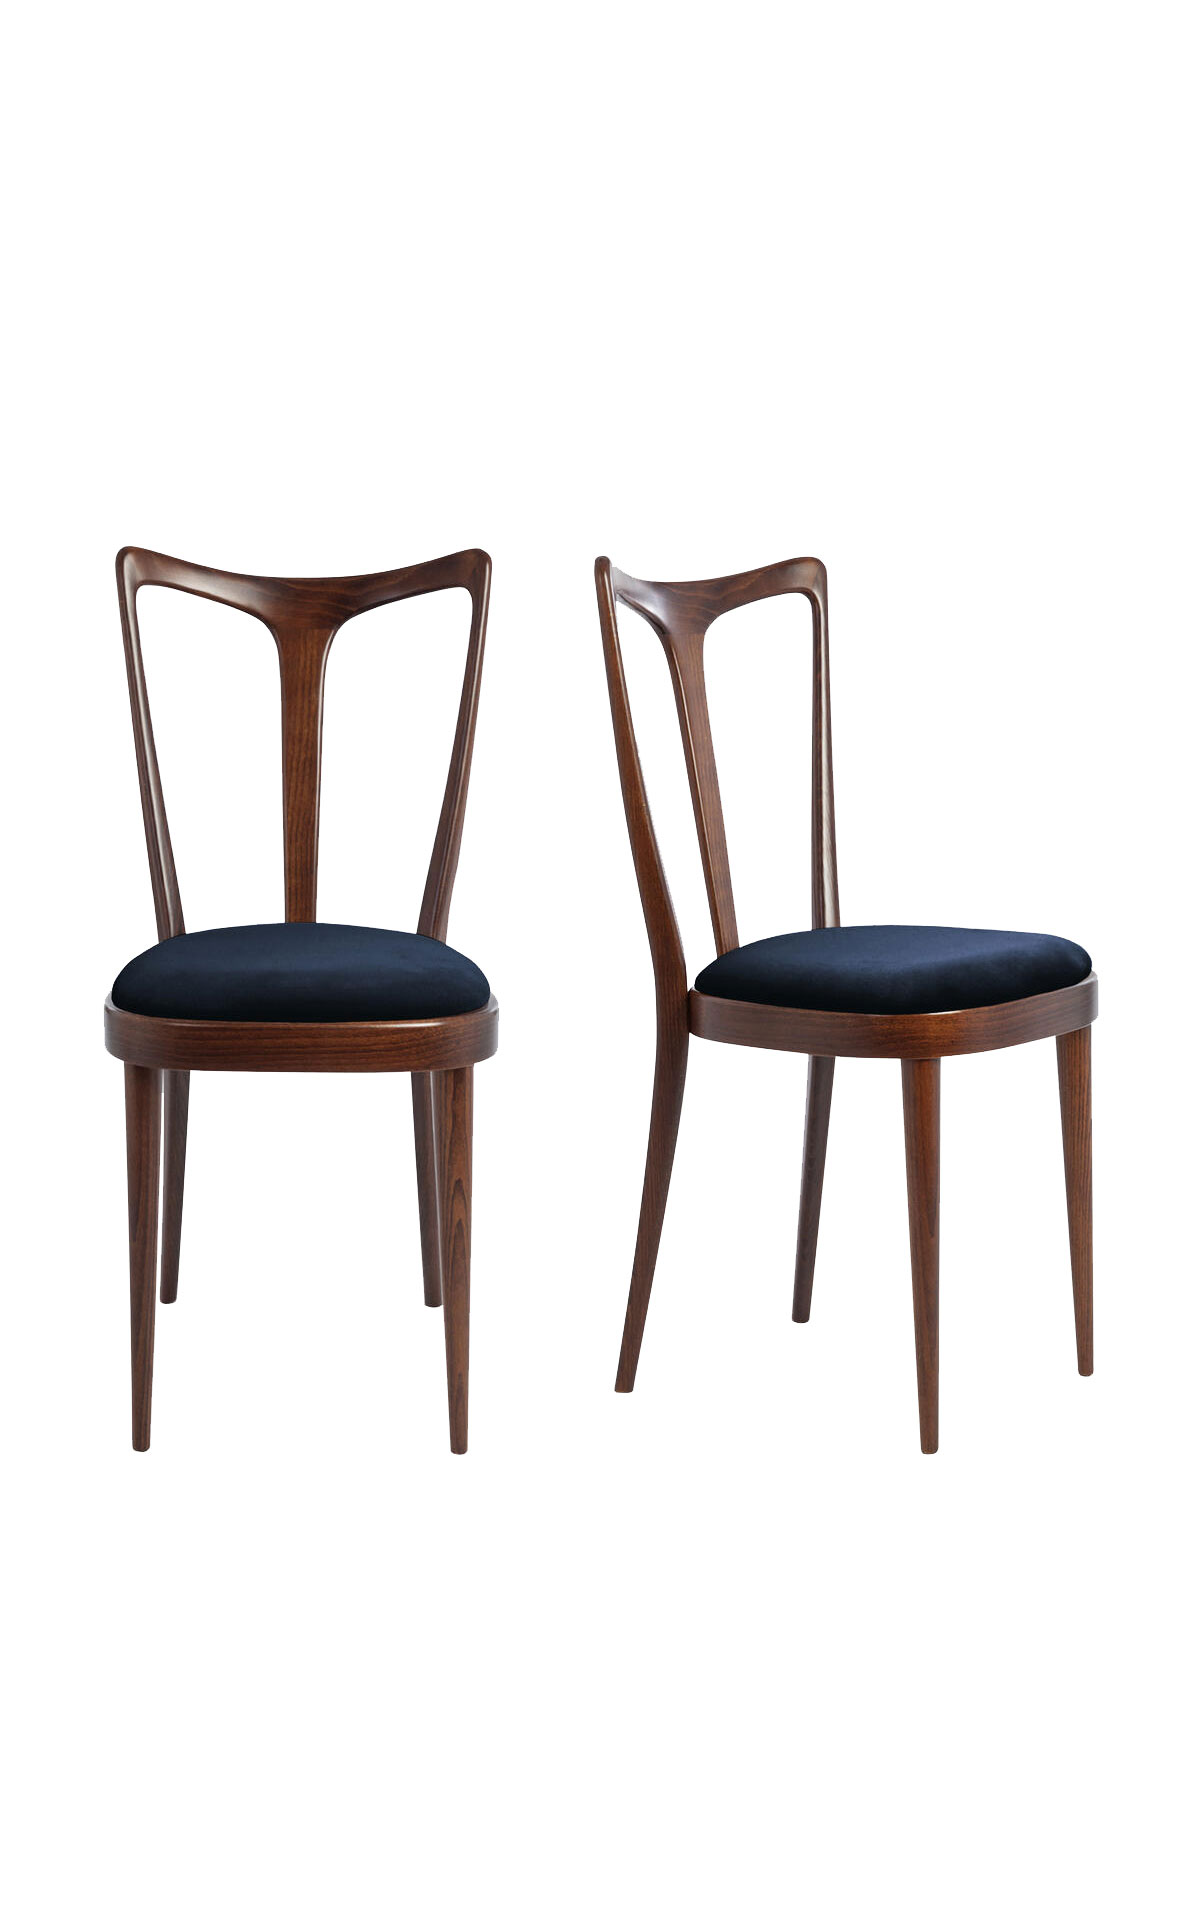 Soho Home Pair of Floyd dining chairs in ink wool from Bicester Village